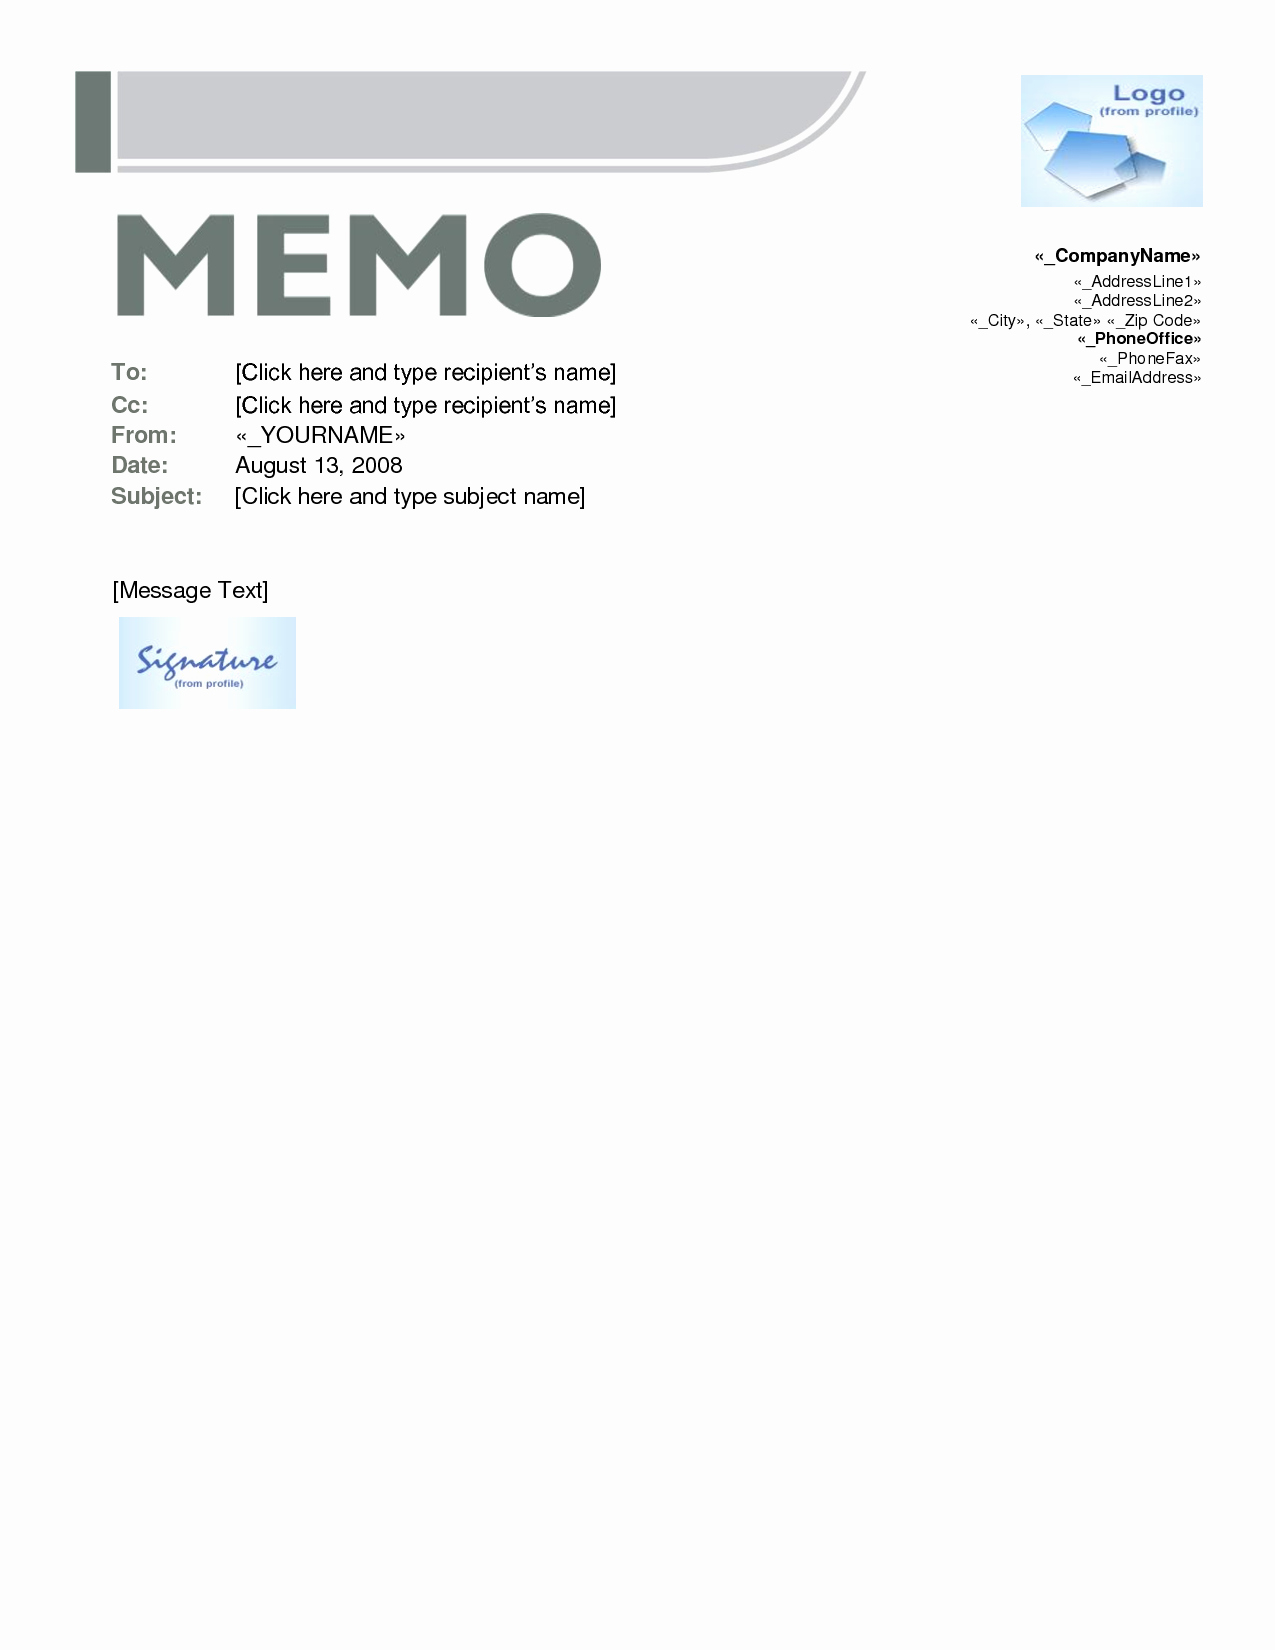 Memo Template for Word Lovely Memo Template Word